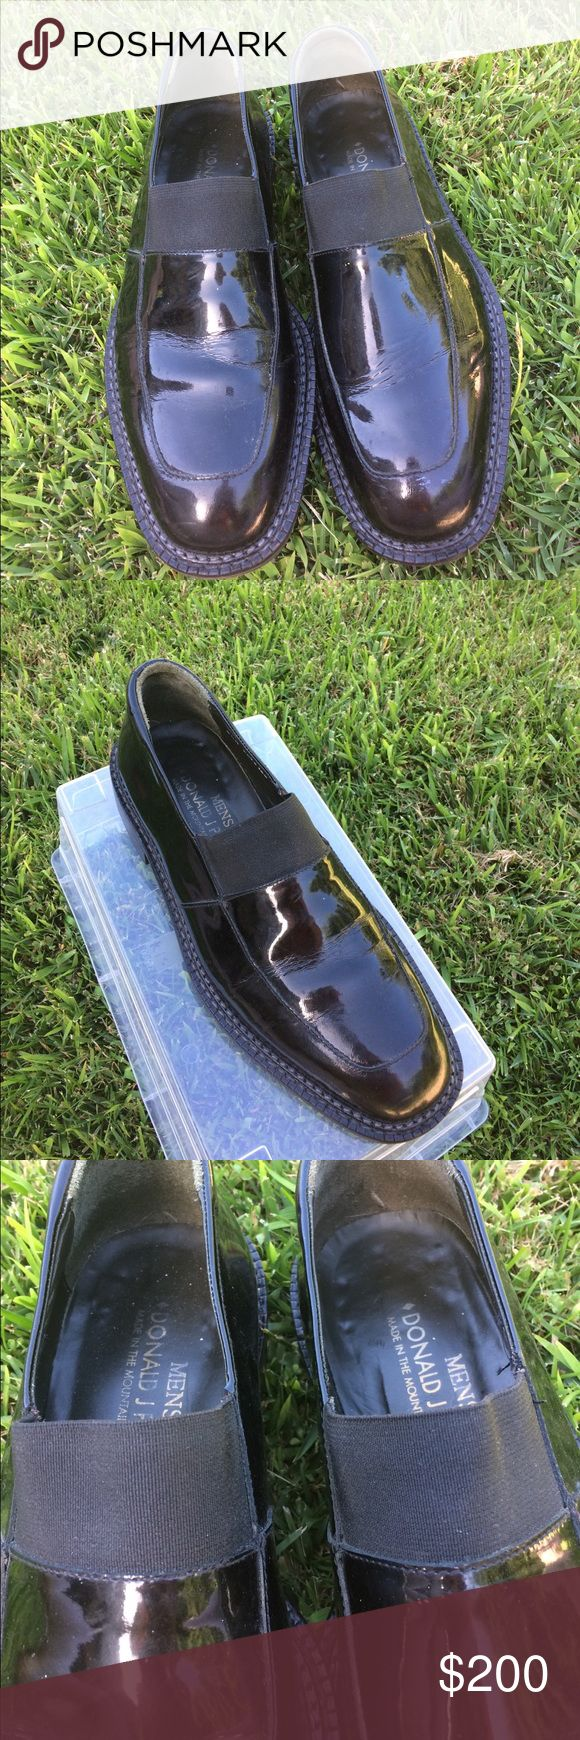 """DONALD J PLINER MENS SLIP ON LOAFERS! SZ 8.5  M -patent leather men's slip on loafers """"KATO"""" style- black elastic across top for comfy fit! - made in the mounts of Italy! They have been worn & have a few blemishes but have many more steps left in them!! Donald J. Pliner Shoes Loafers & Slip-Ons"""